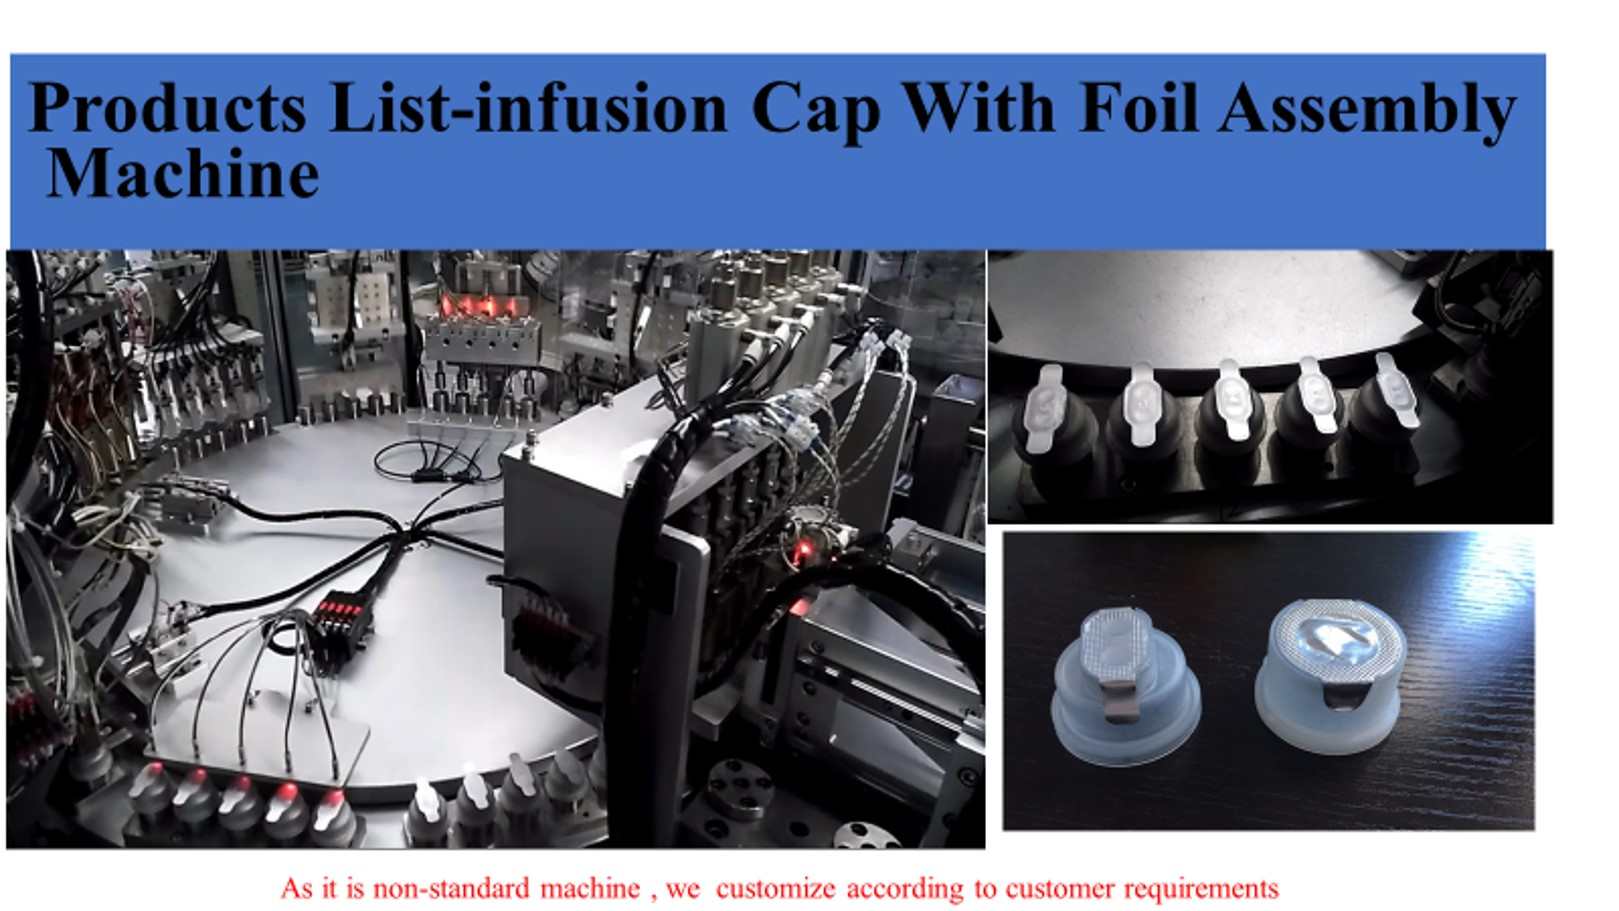 Total tear-off aluminium caps assembly machine for infusion